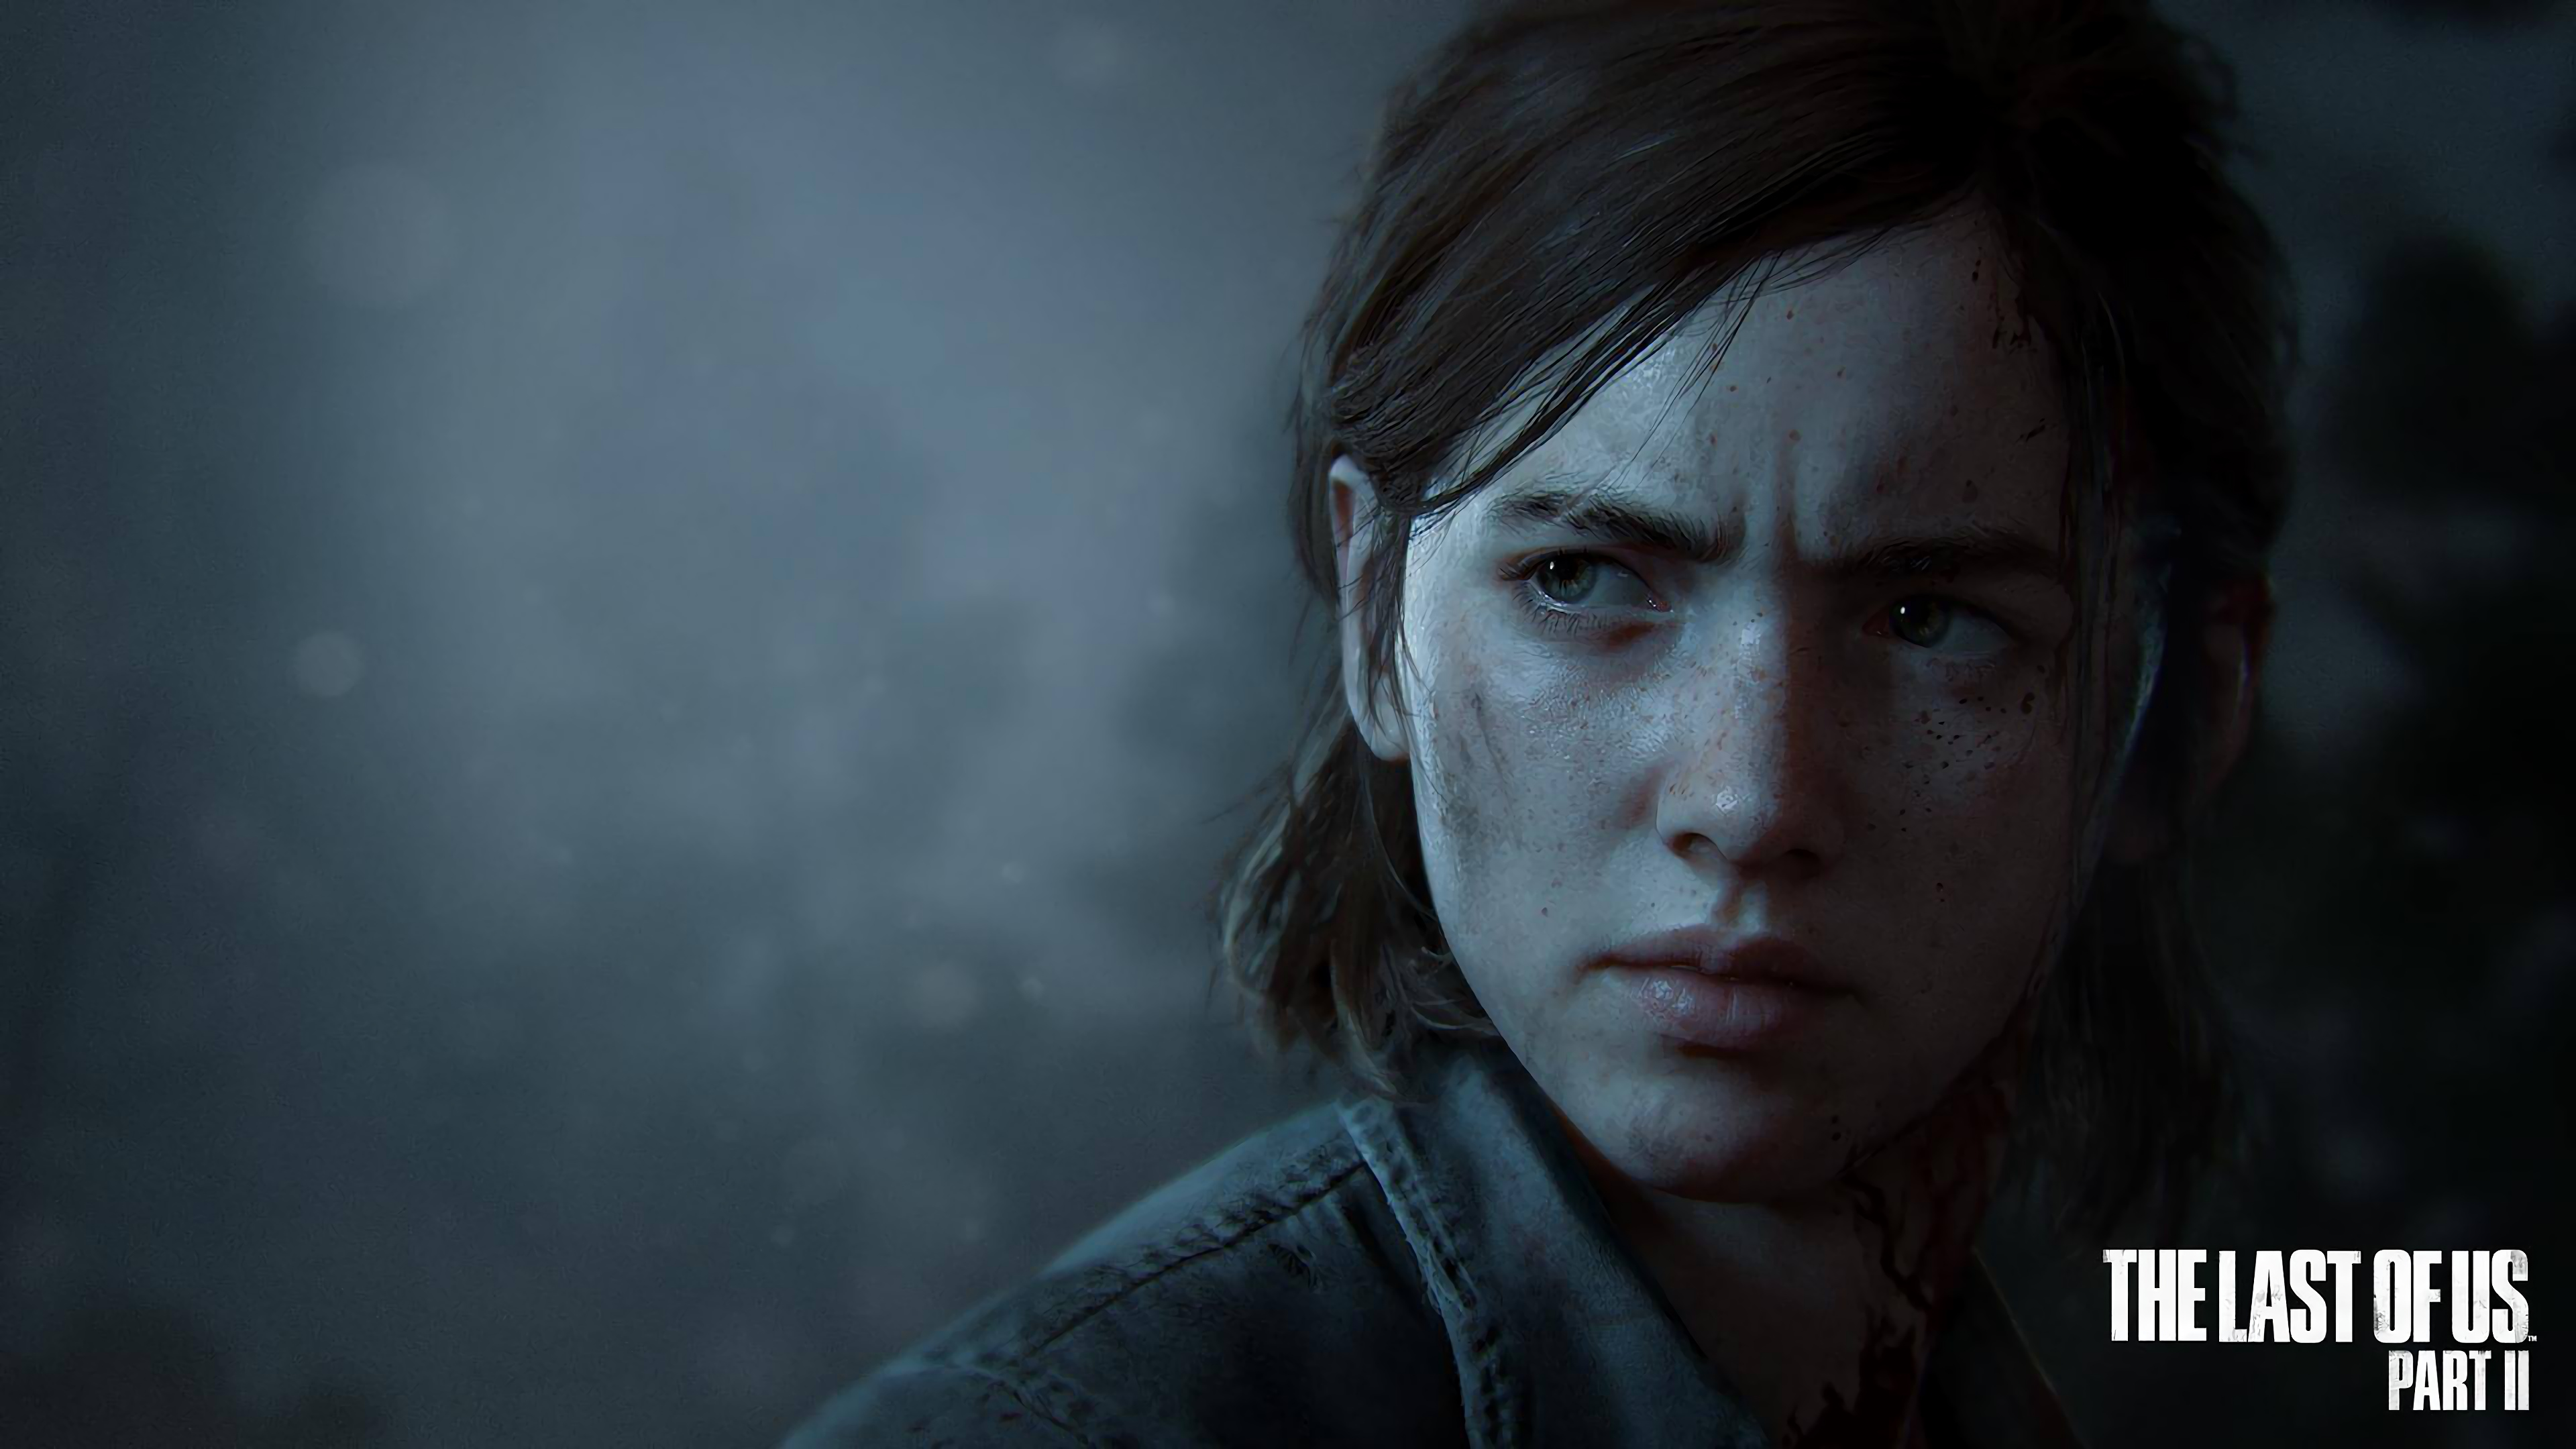 The Last of Us 2 Wallpapers   Top The Last of Us 2 3840x2160